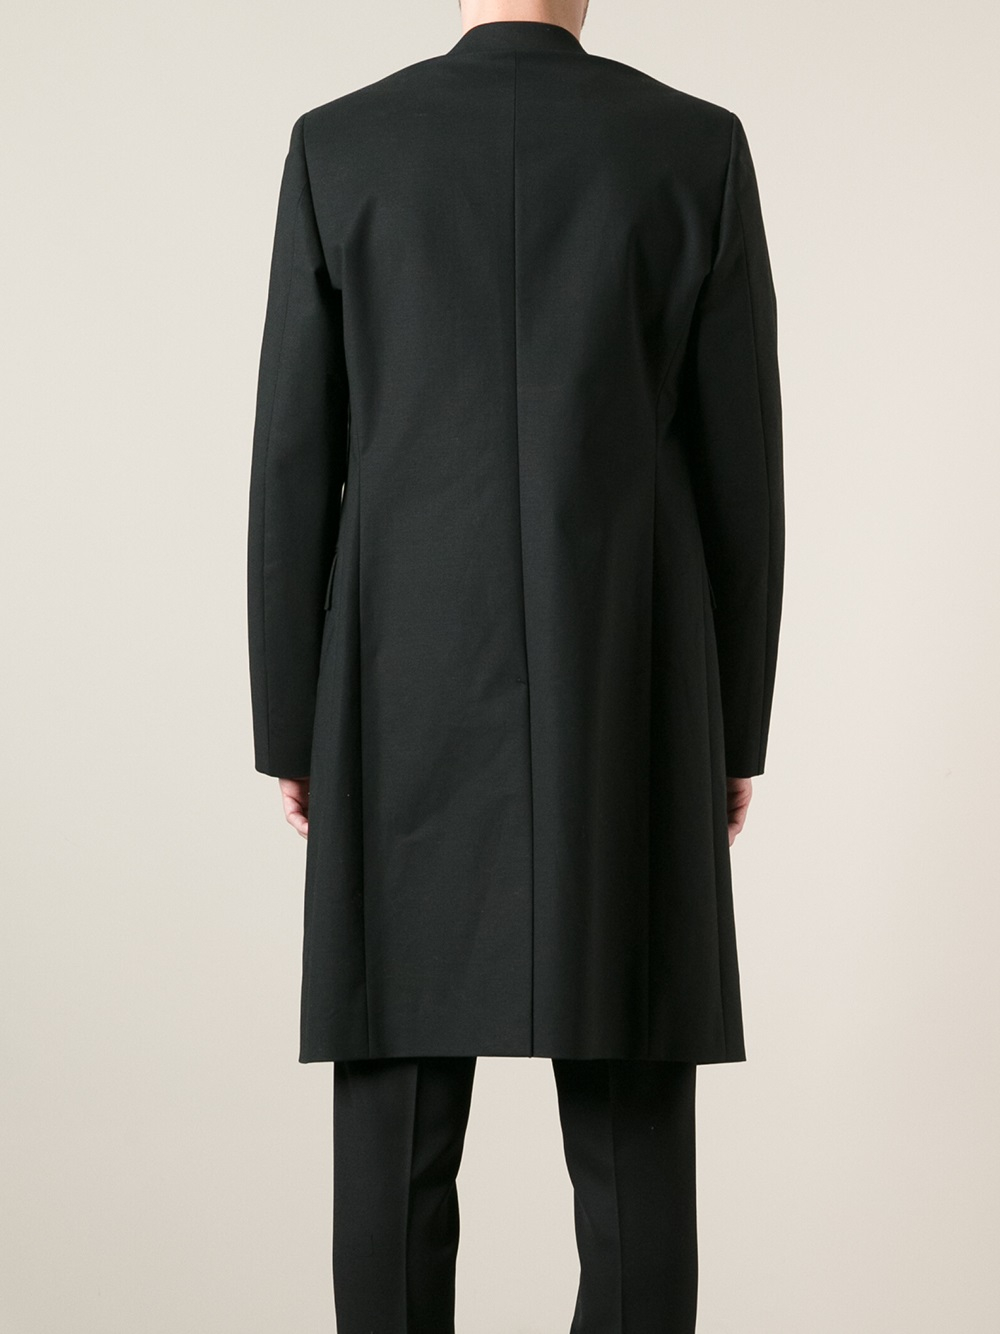 Raf Simons Minimalist Lightweight Overcoat In Black For